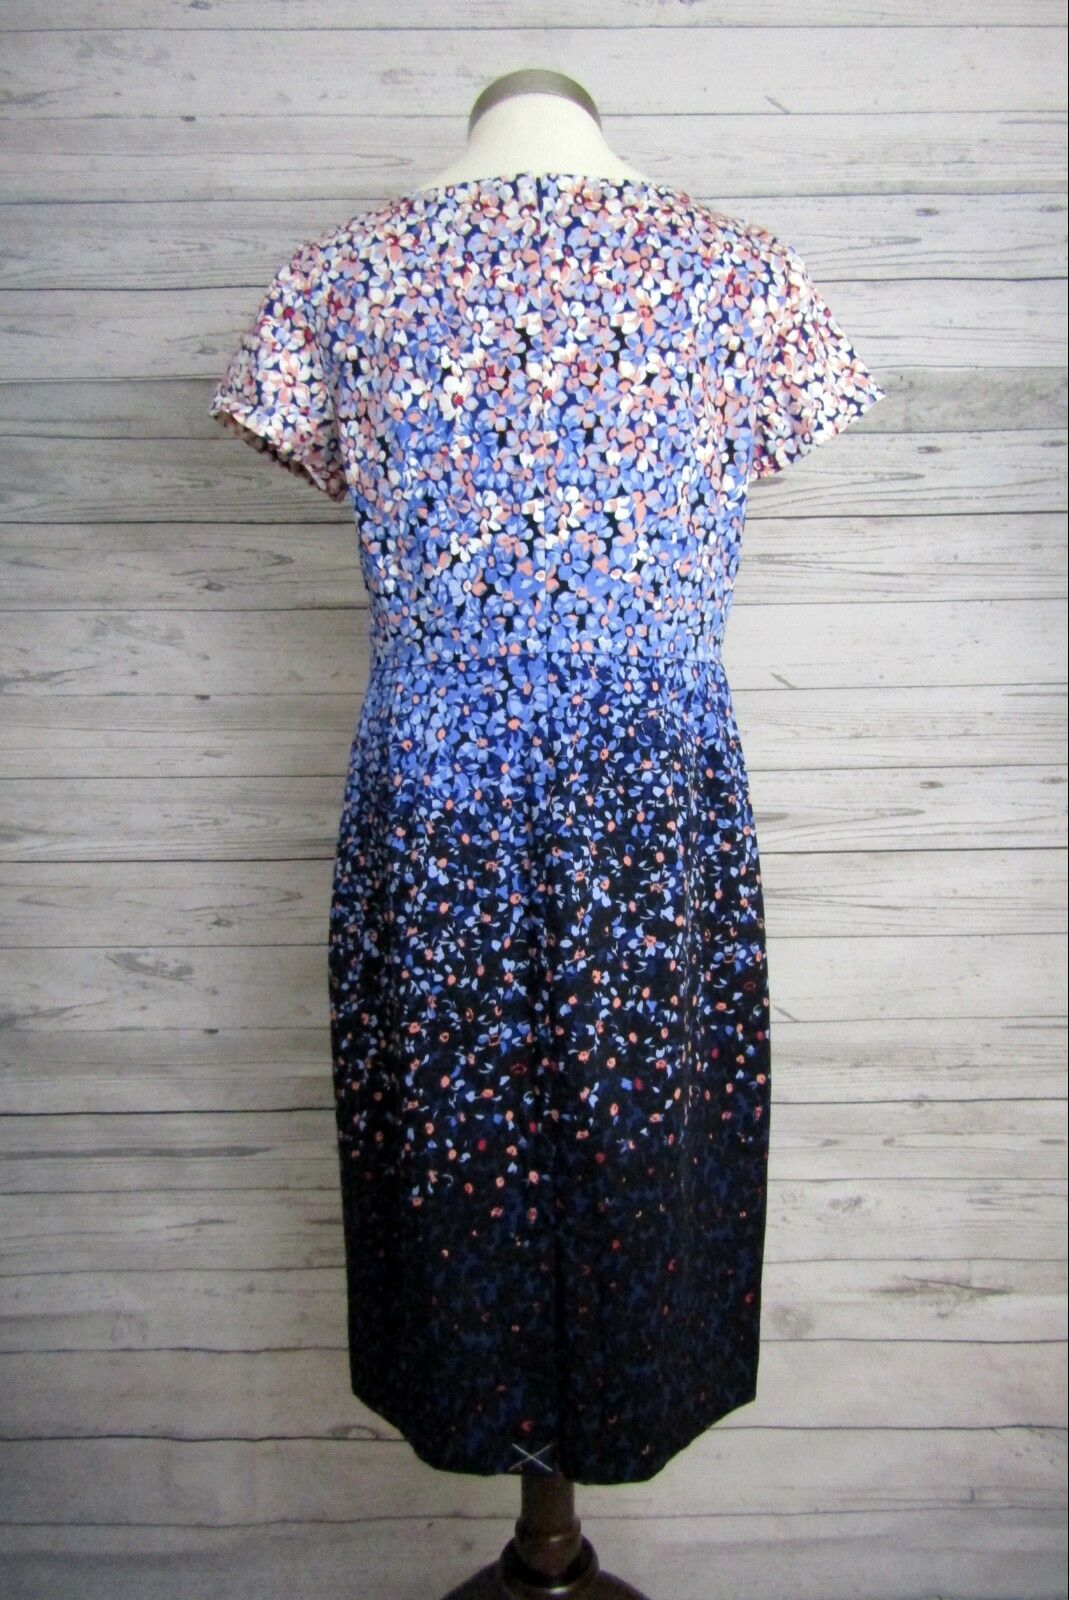 NWT Talbots Dress Dress Dress bluee Floral Lined Cotton Sheath Career or Casual Size 6 3899f8